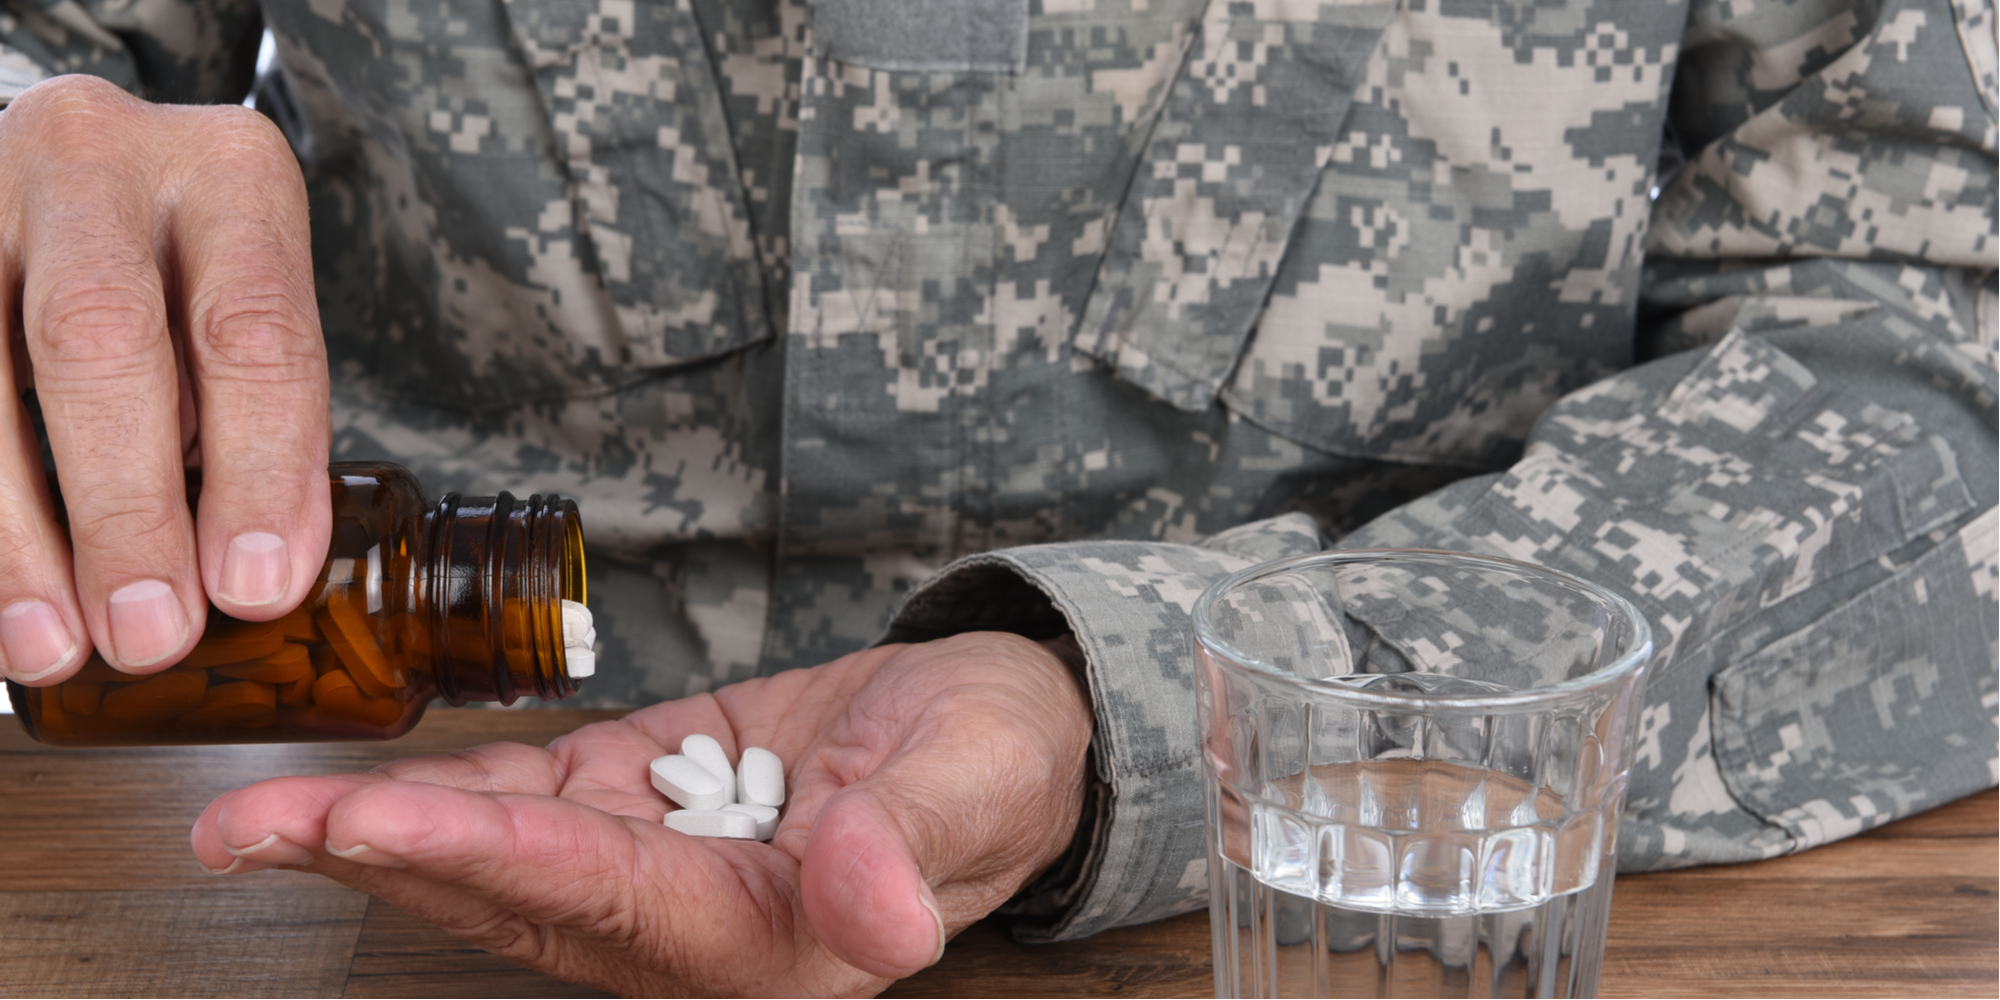 Veteran Substance Abuse